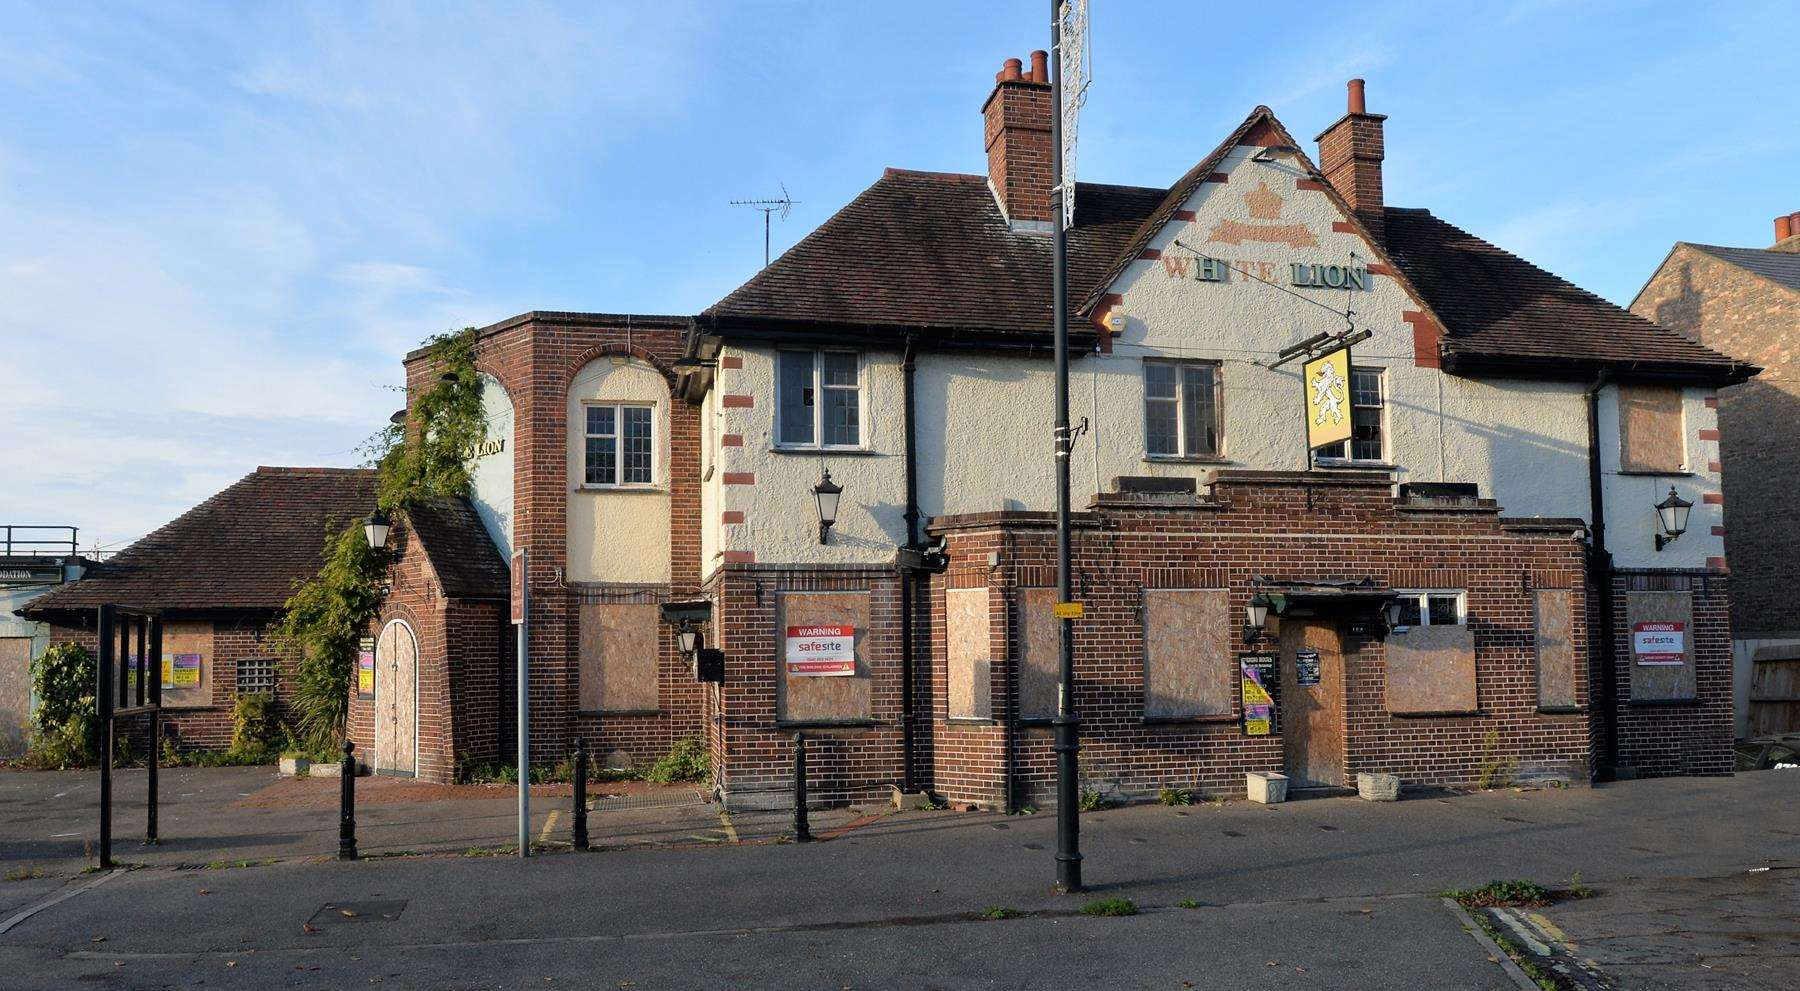 White Lion, Newmarket (5215948)